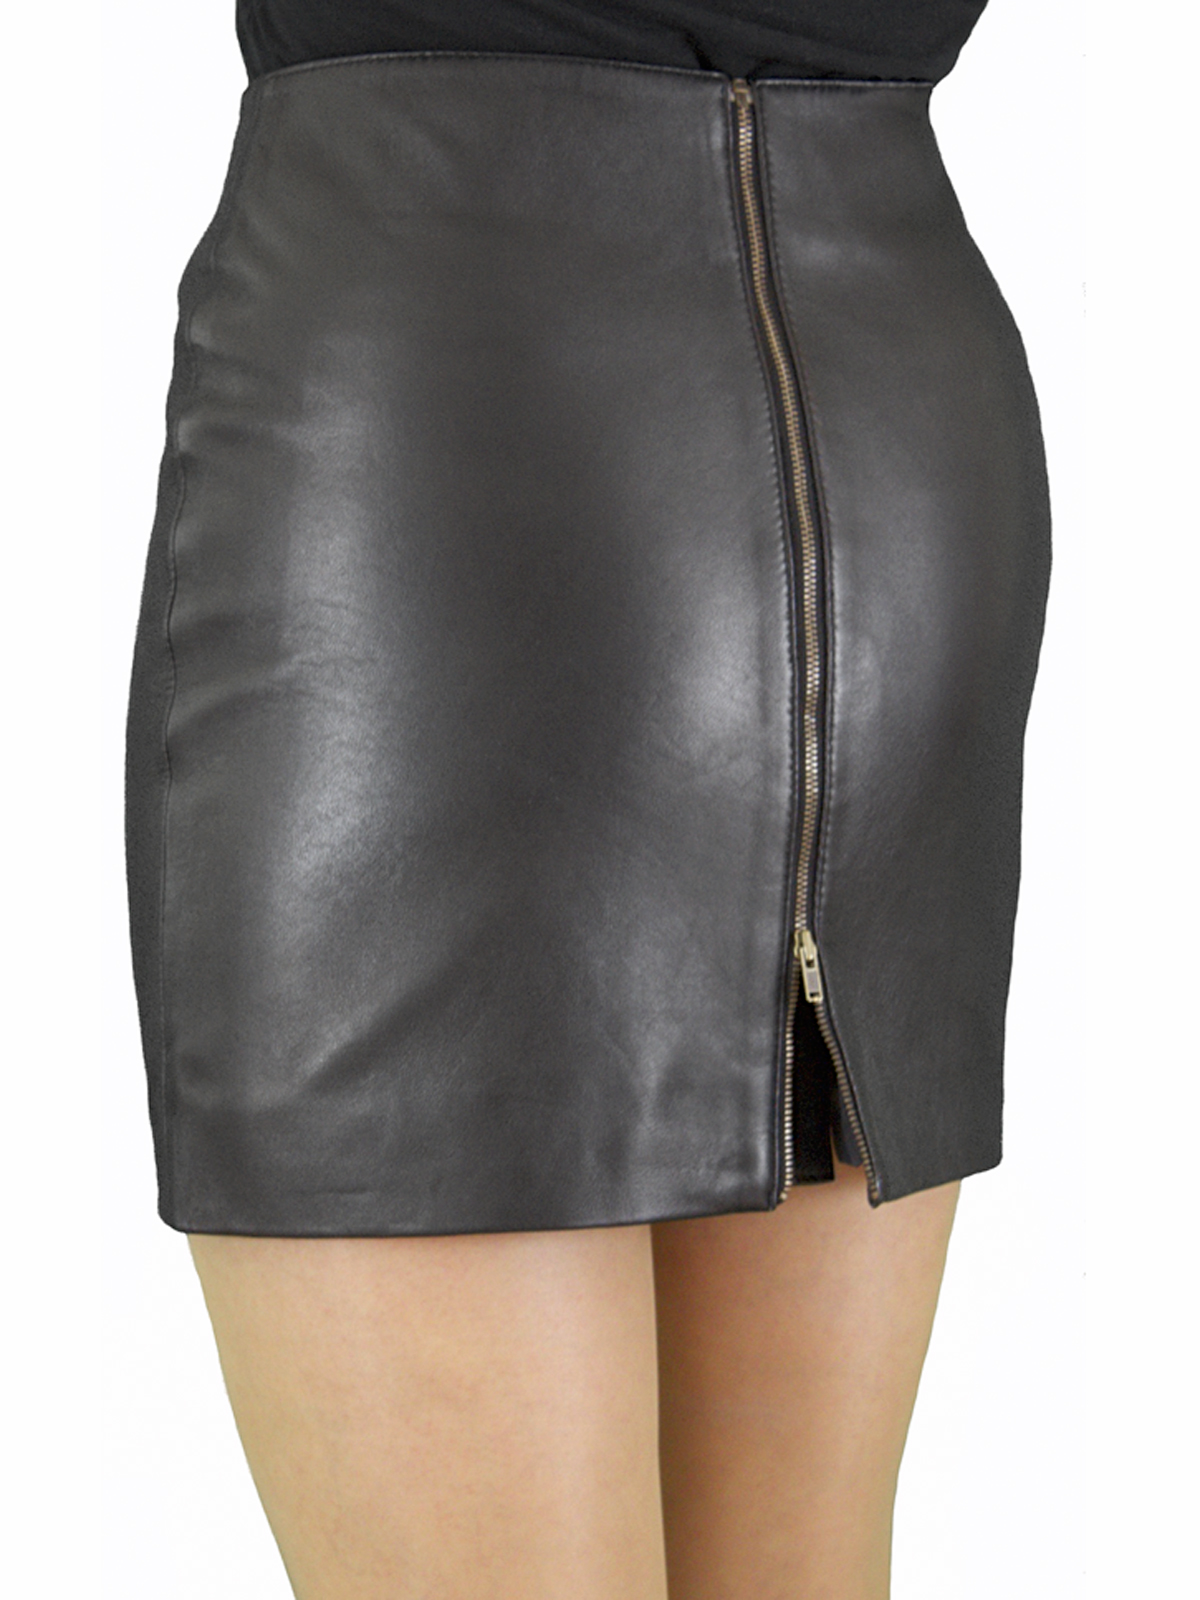 Black Superior Leather Mini Skirt with full rear zip, red lining